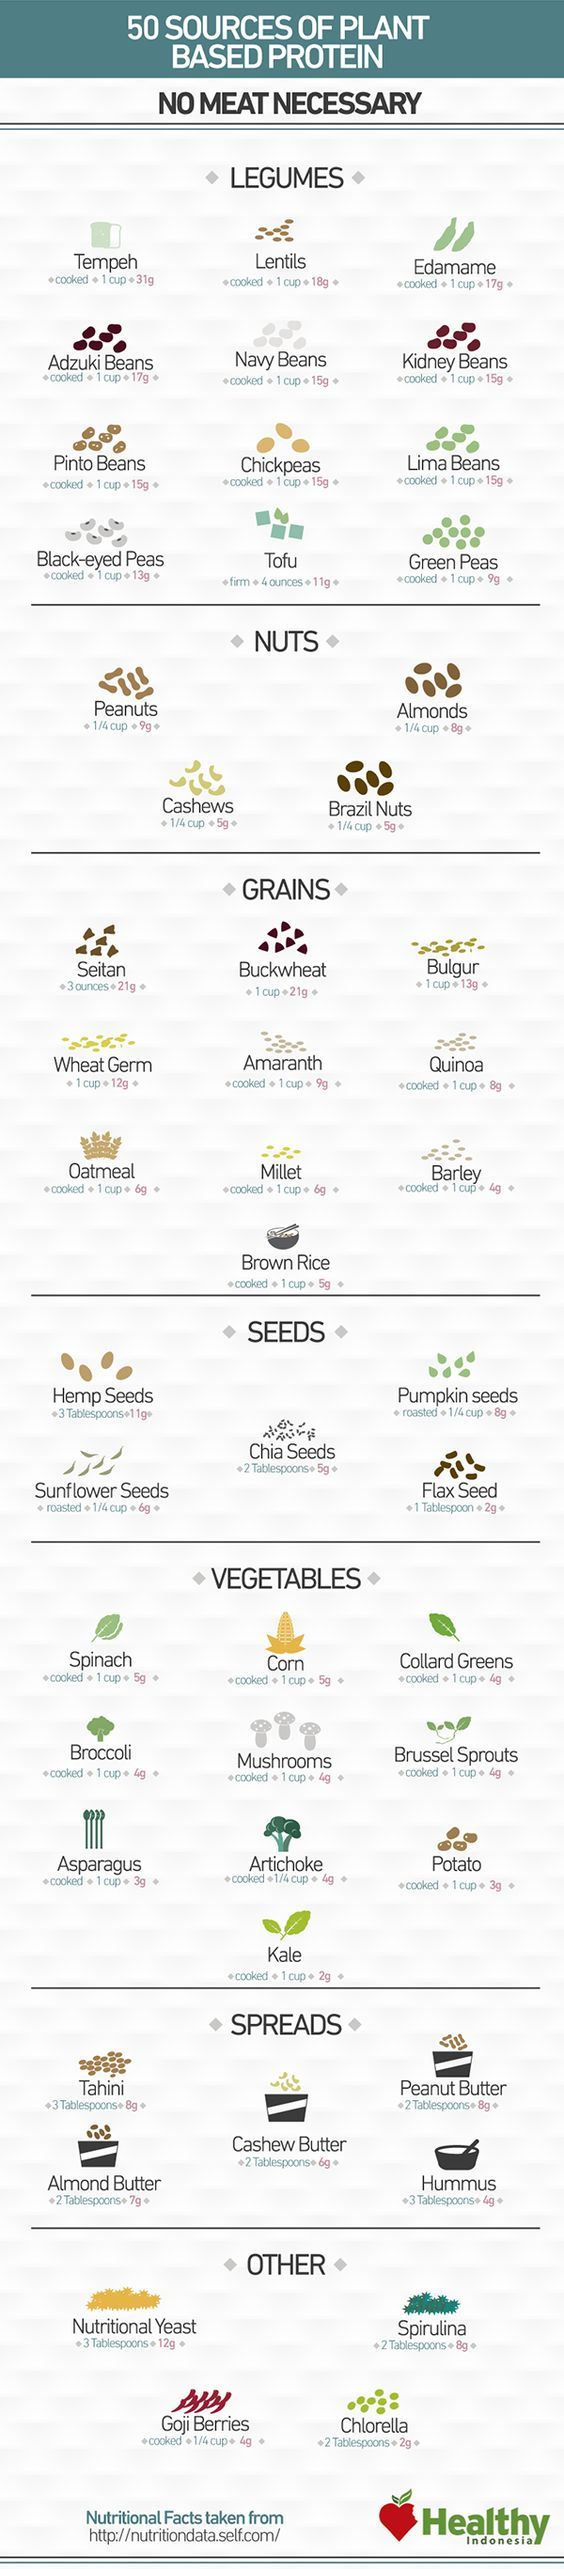 50 Sources of Plant Based Protein (NO Meat Necessary)--suprising info to me: buckwheat, seitan, & nutritional yeast